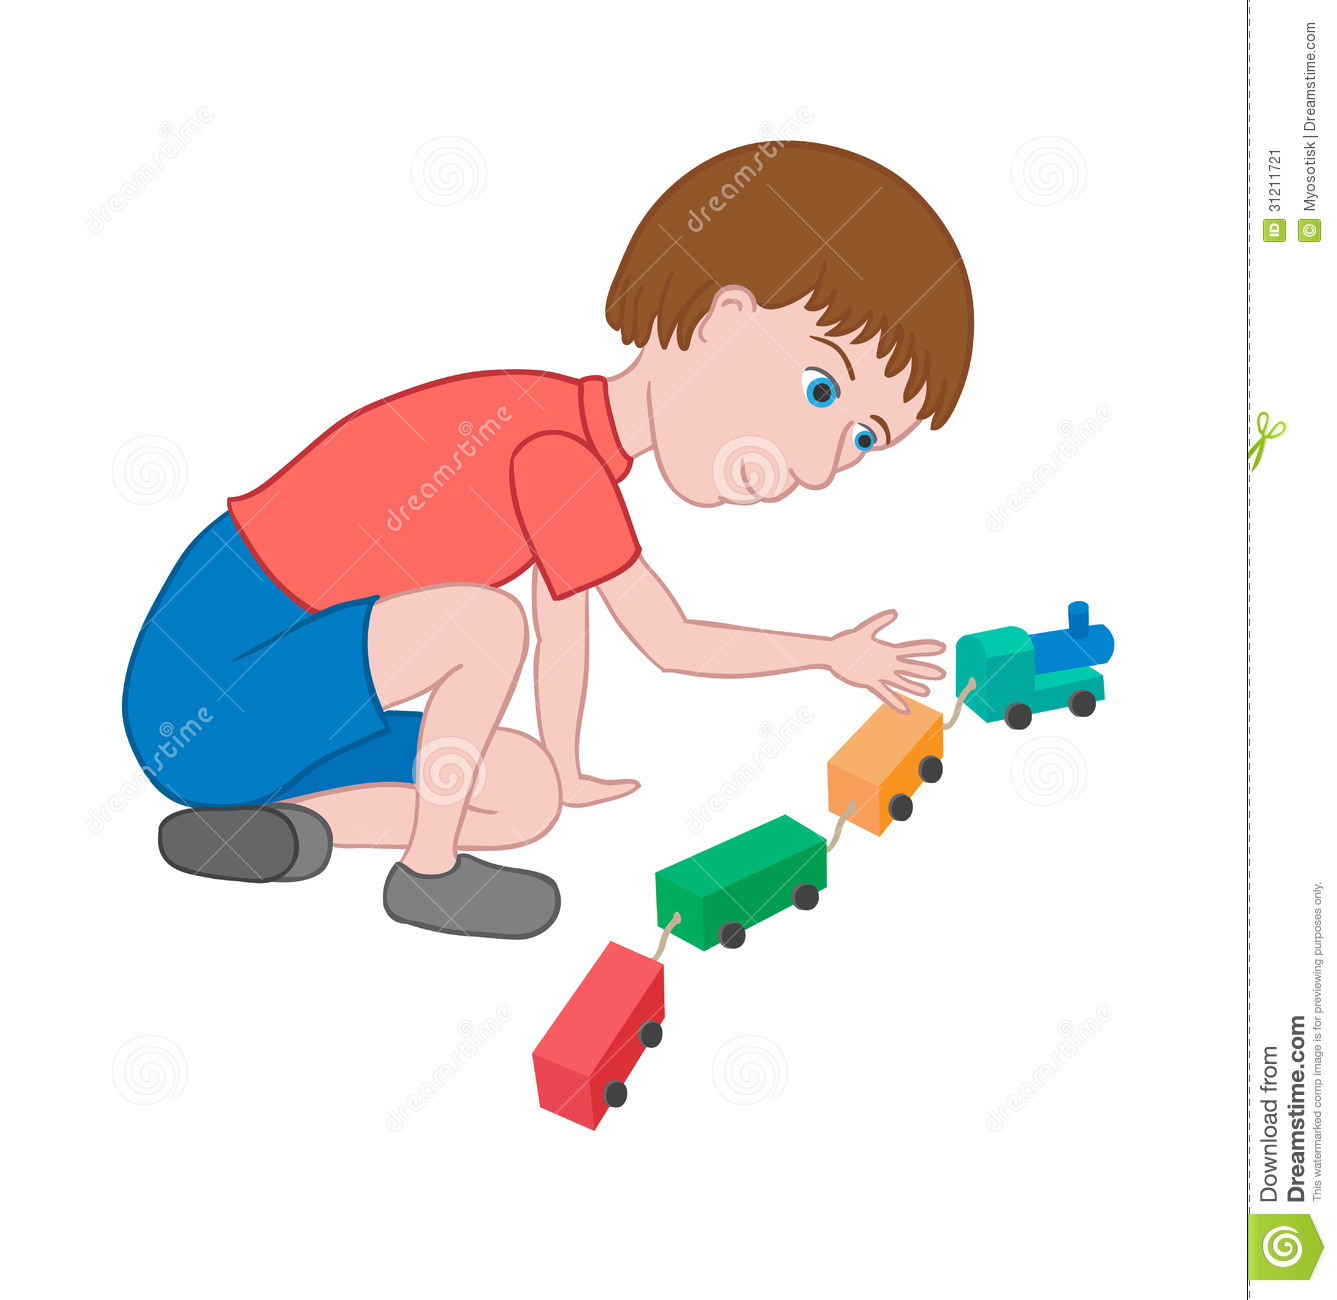 Boy Playing With A Toy Train Stock Image - Image: 31211721